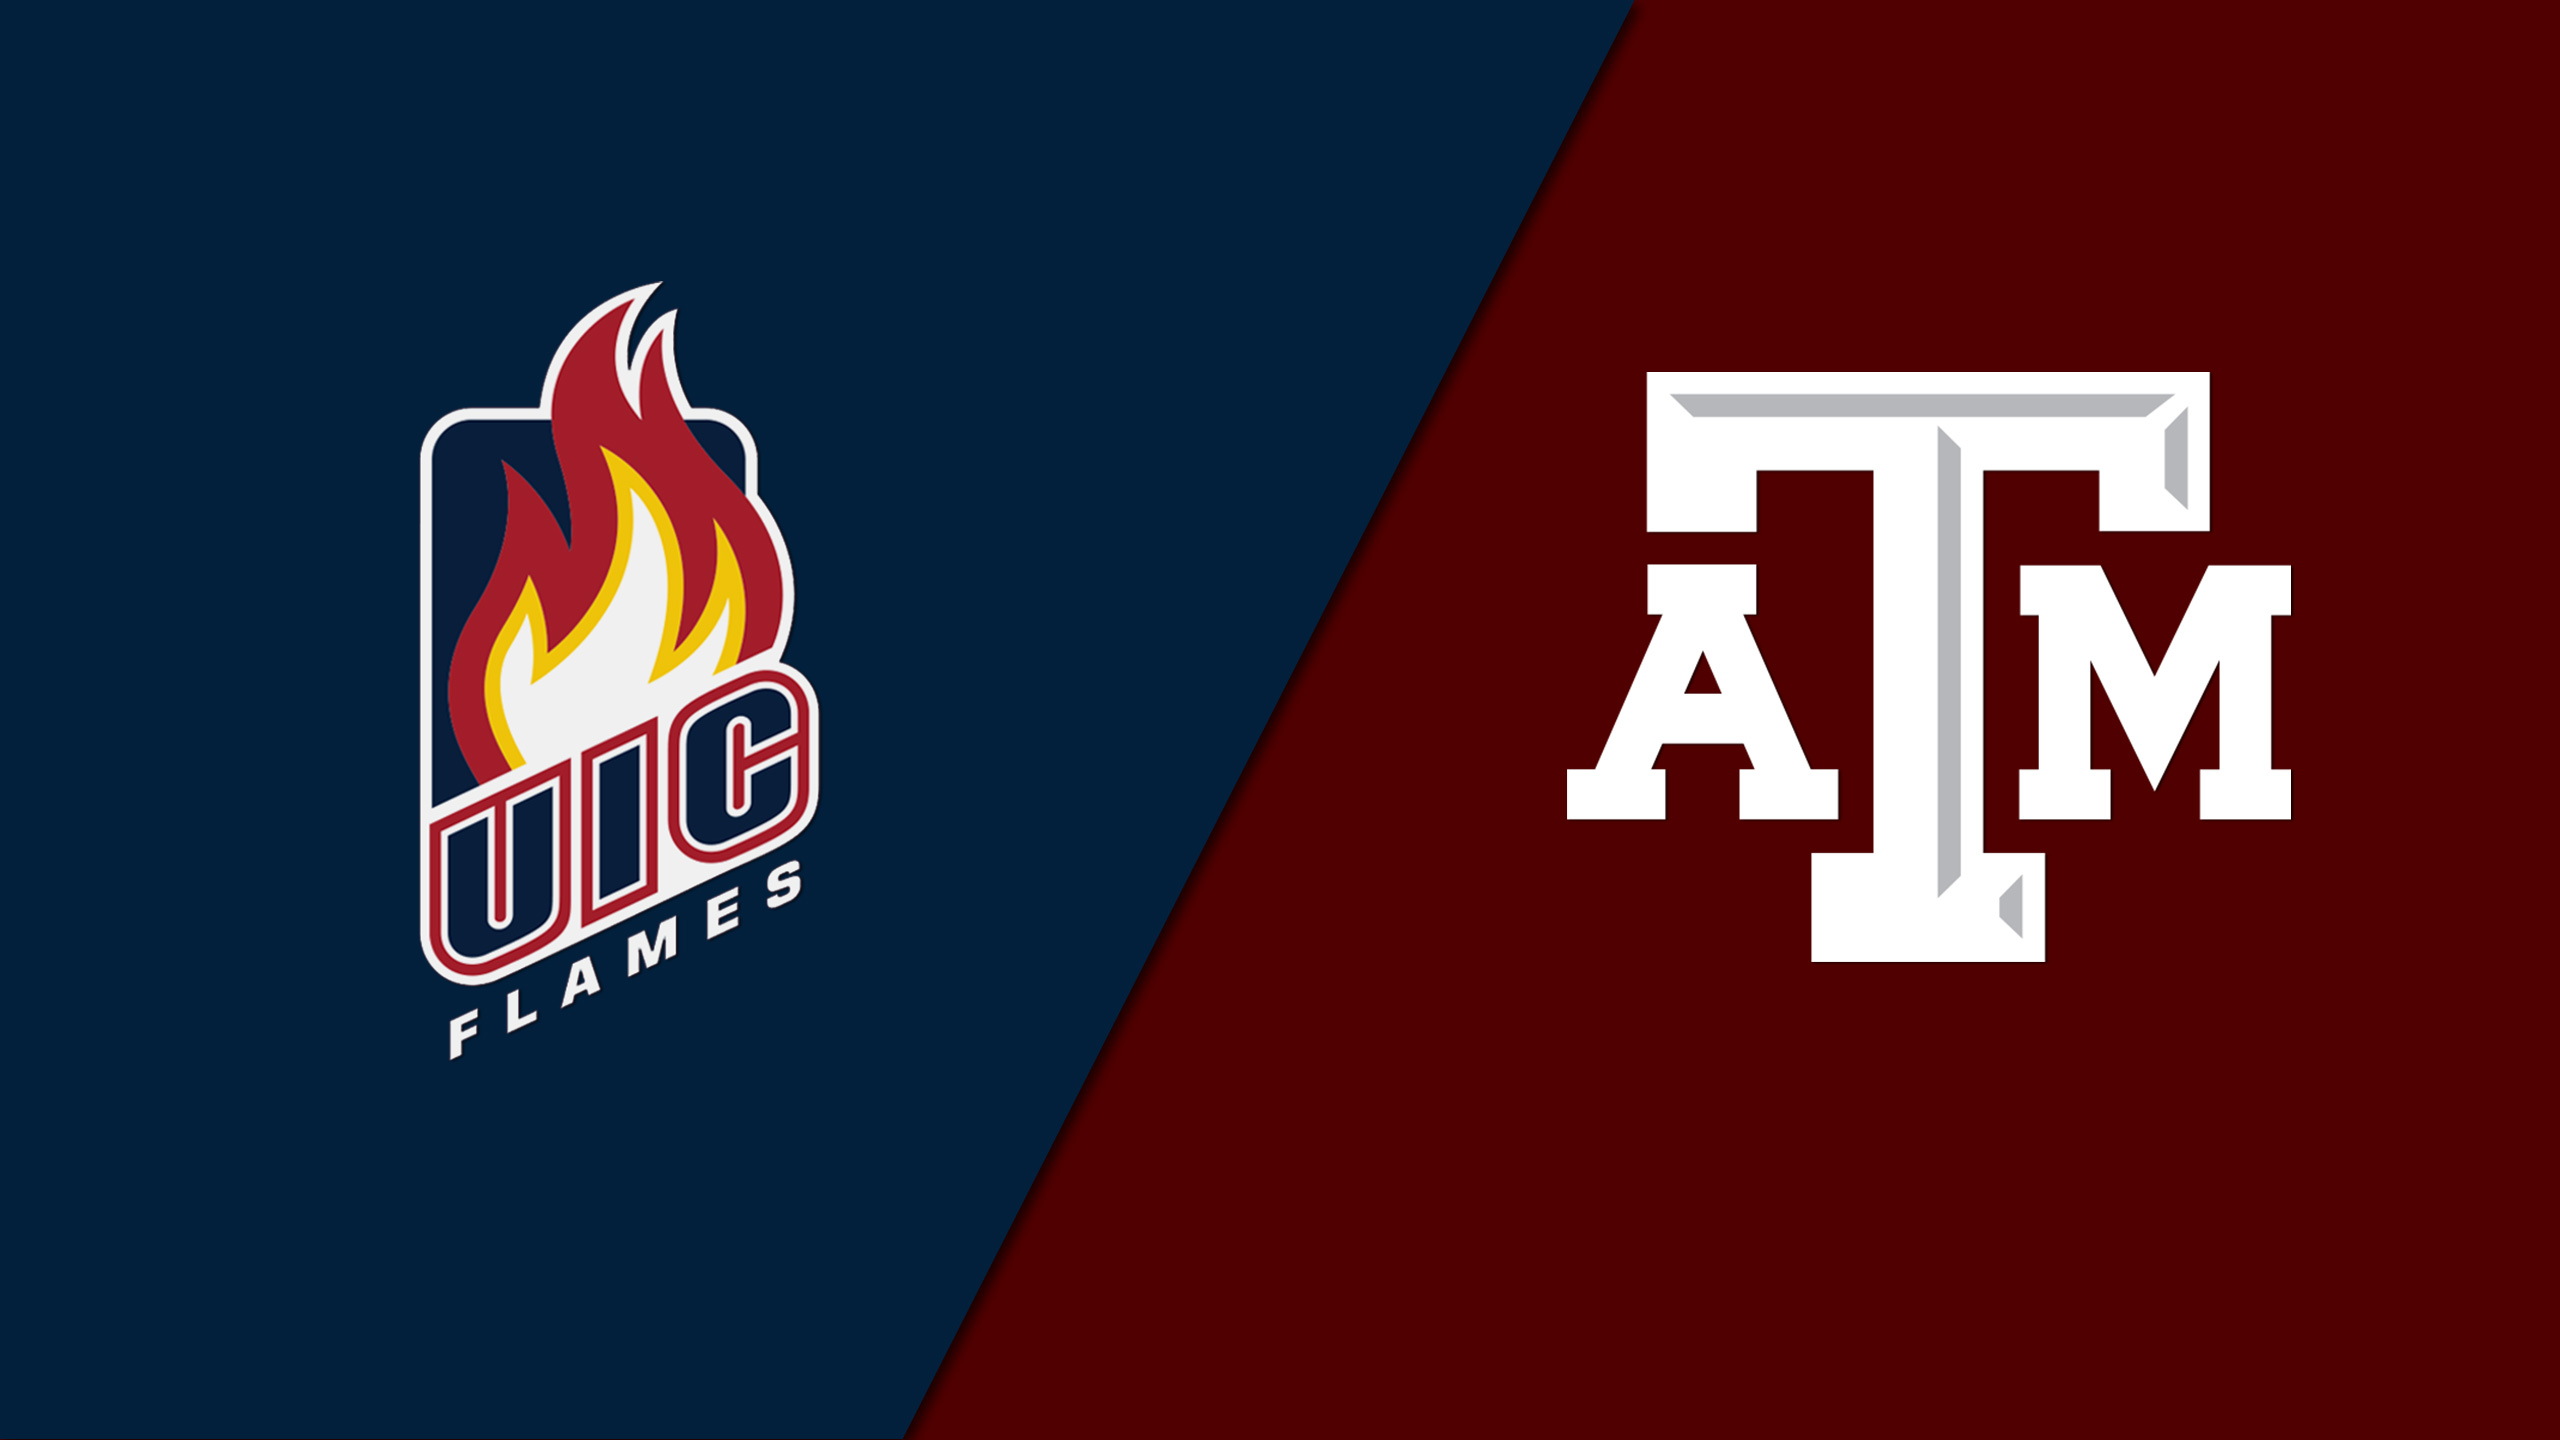 Illinois-Chicago vs. Texas A&M (Baseball)